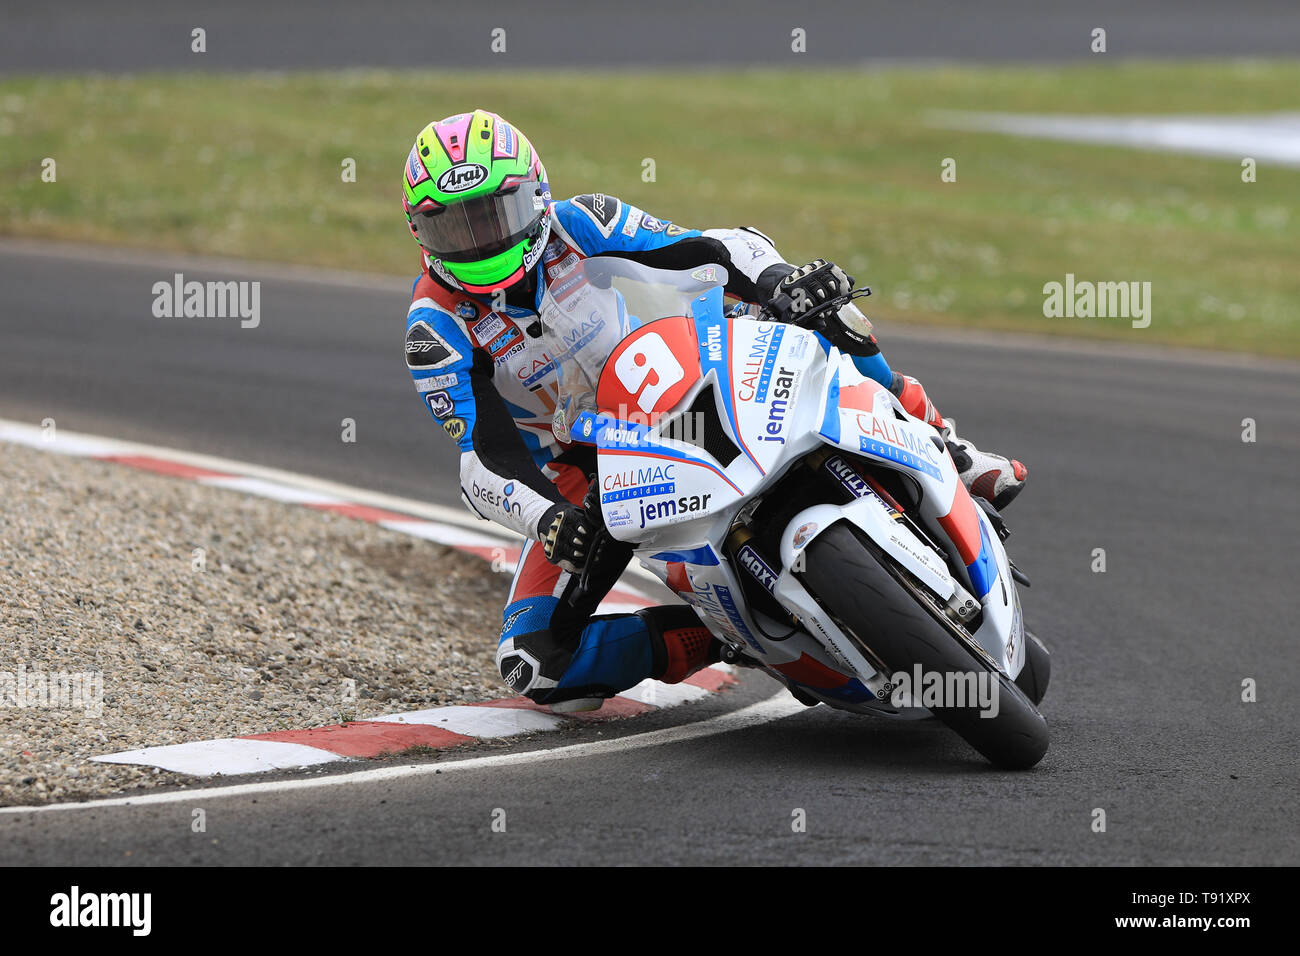 Portrush, Northern Ireland. 16th May, 2019. International North West 200 Motorcycle road racing, Thursday practice and evening racing; Craig Neve on the Callmac Scaffolding BMW during the SuperStock qualifying session before having an off at Magherabuoy Credit: Action Plus Sports/Alamy Live News - Stock Image